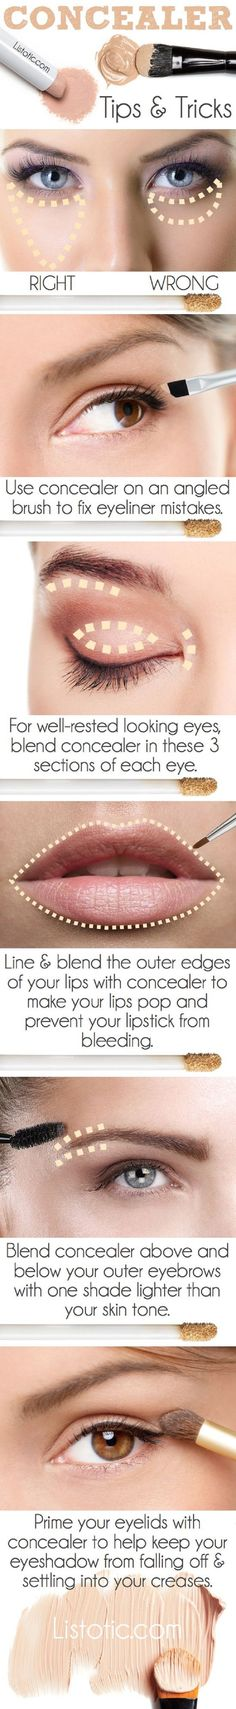 http://natural-hairs.com/9-rules-your-ultimate-natural-look-makeup-cheat-sheet/ Use Your Concealer The Right Way - 13 Best Makeup Tutorials and Infographics for Beginners http://natural-hairs.com/9-rules-your-ultimate-natural-look-makeup-cheat-sheet/